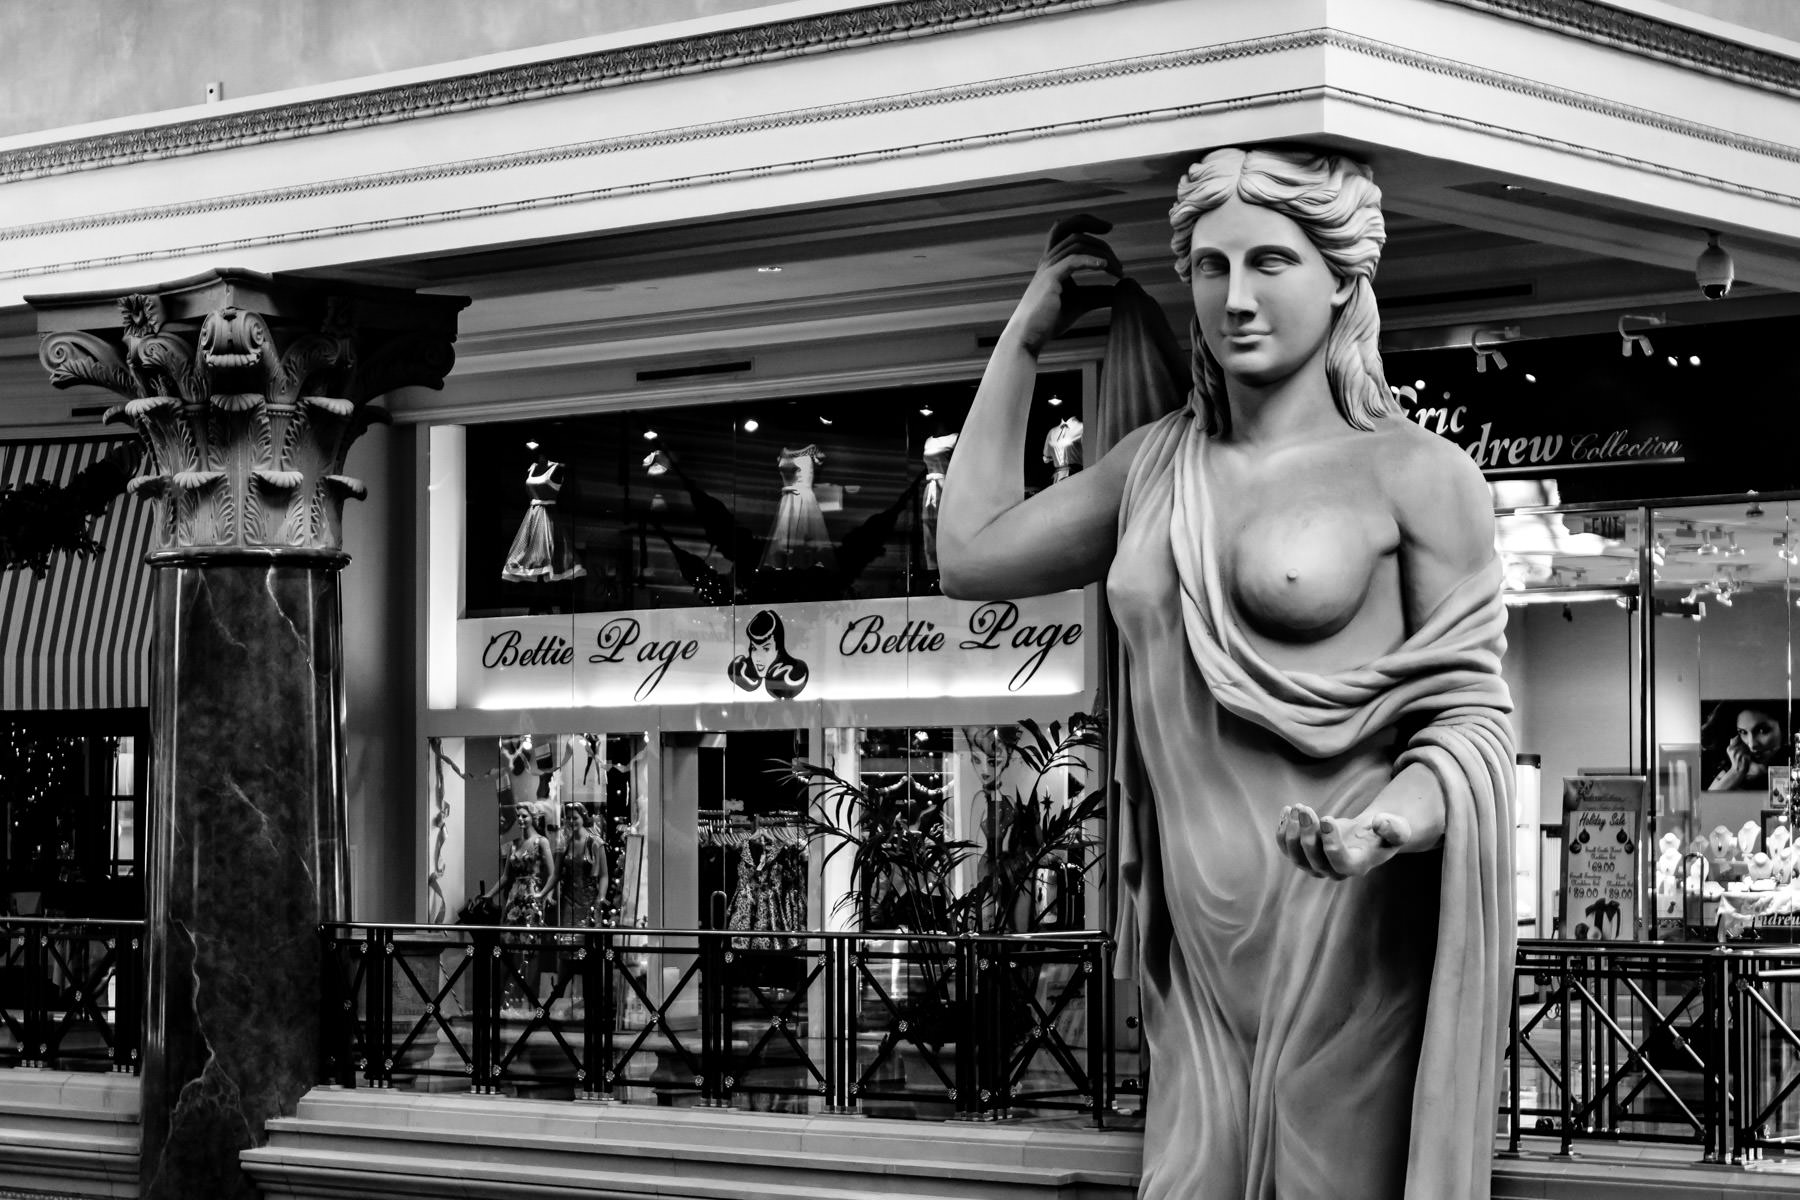 Interior statuary at the Forum Shops at Caesars Palace, Las Vegas.